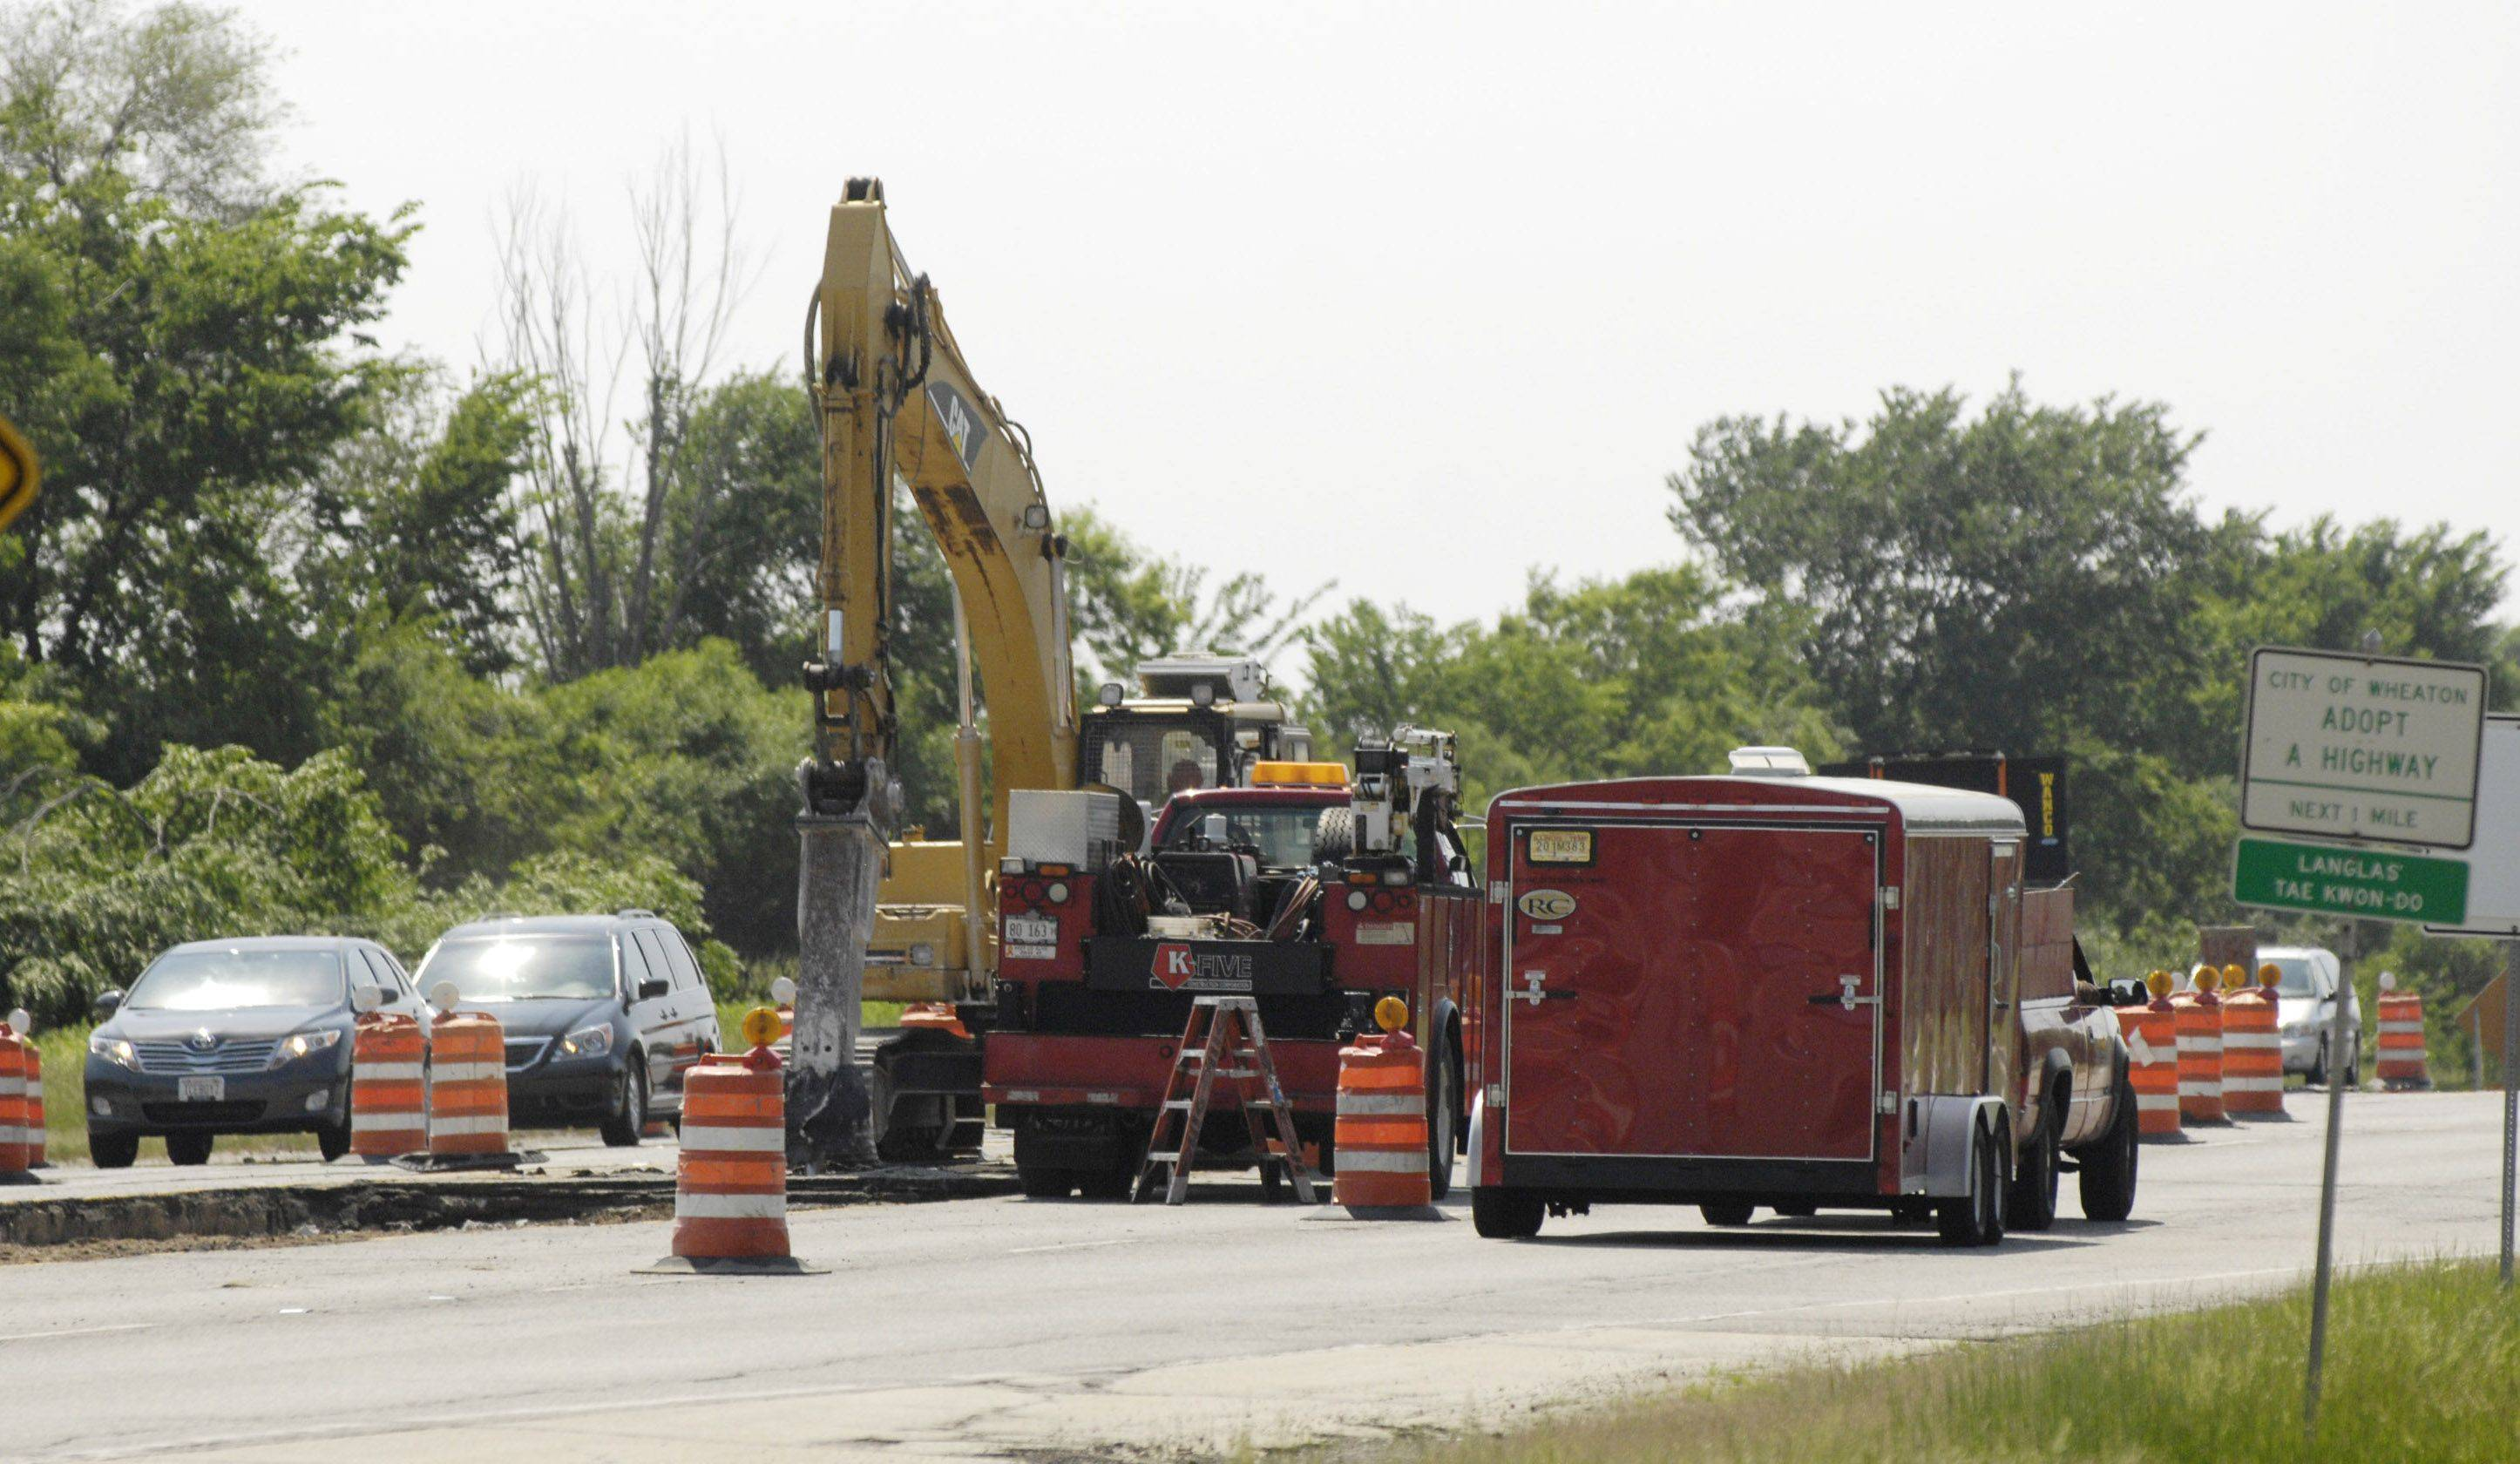 Construction at Naperville and Butterfield roads is one of many projects statewide that will halt if lawmakers don't return to Springfield to approve a capital budget, Gov. Pat Quinn said Monday.